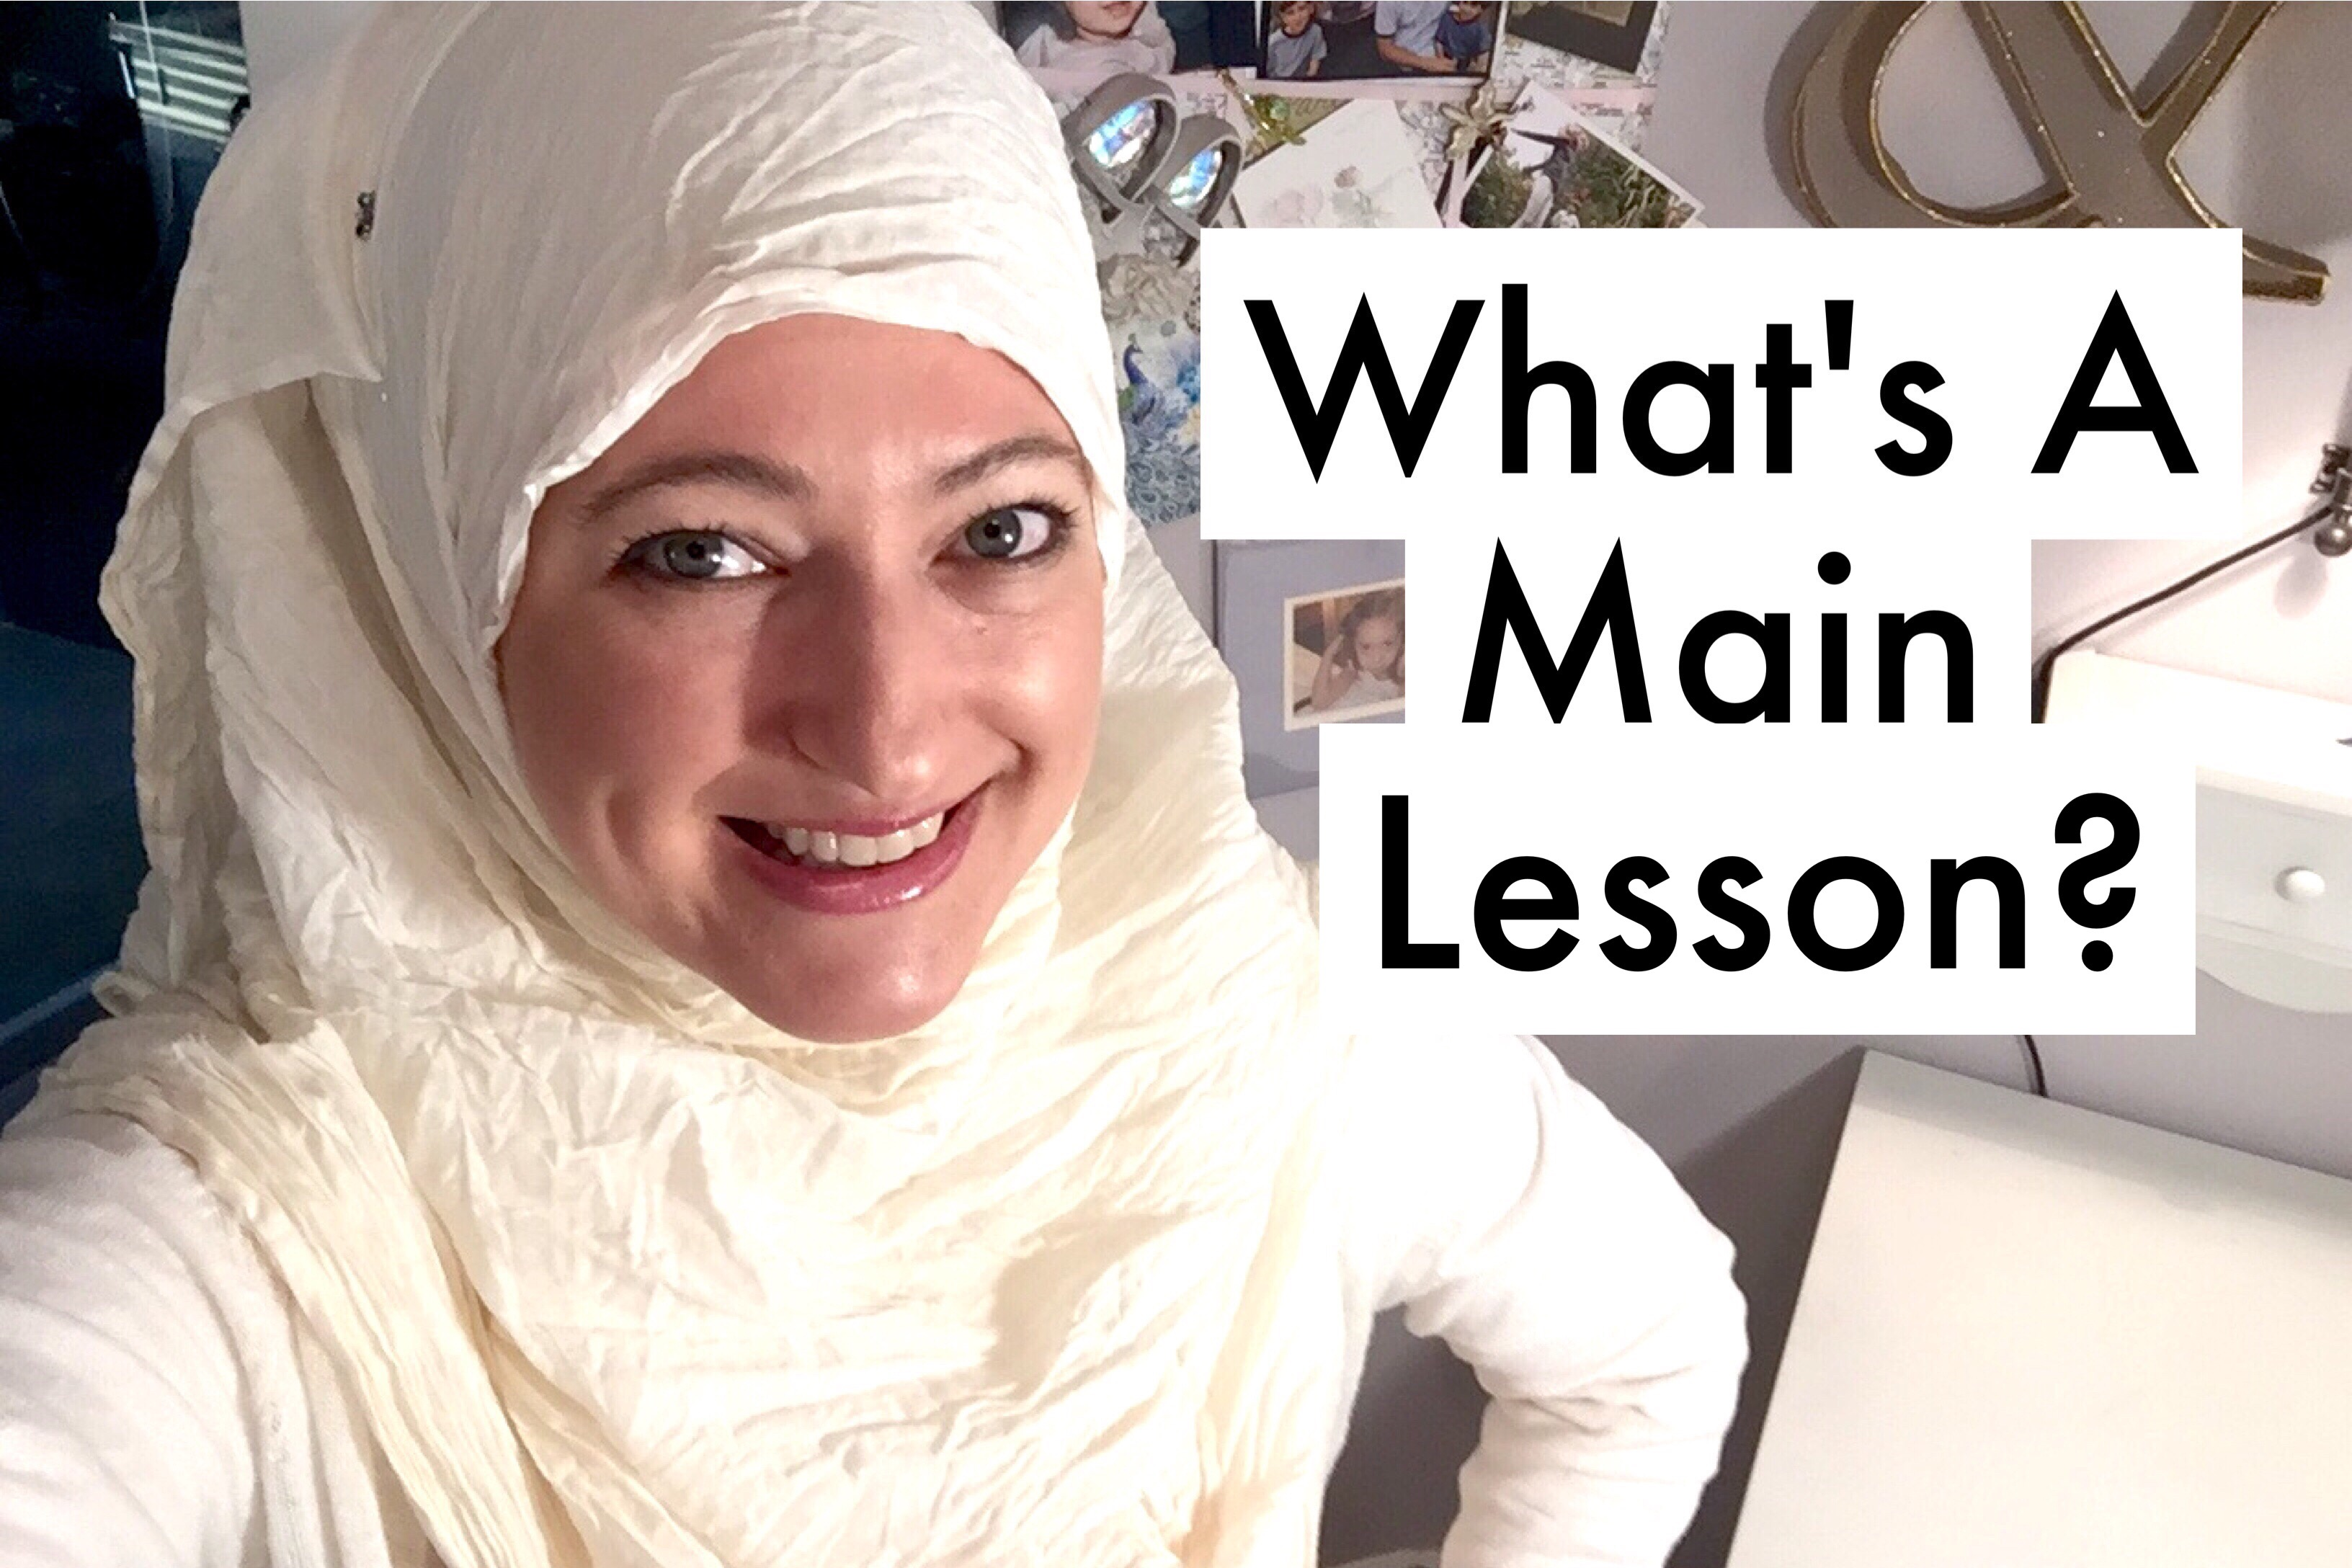 Main Lessons vs. Unit Studies | Homeschool